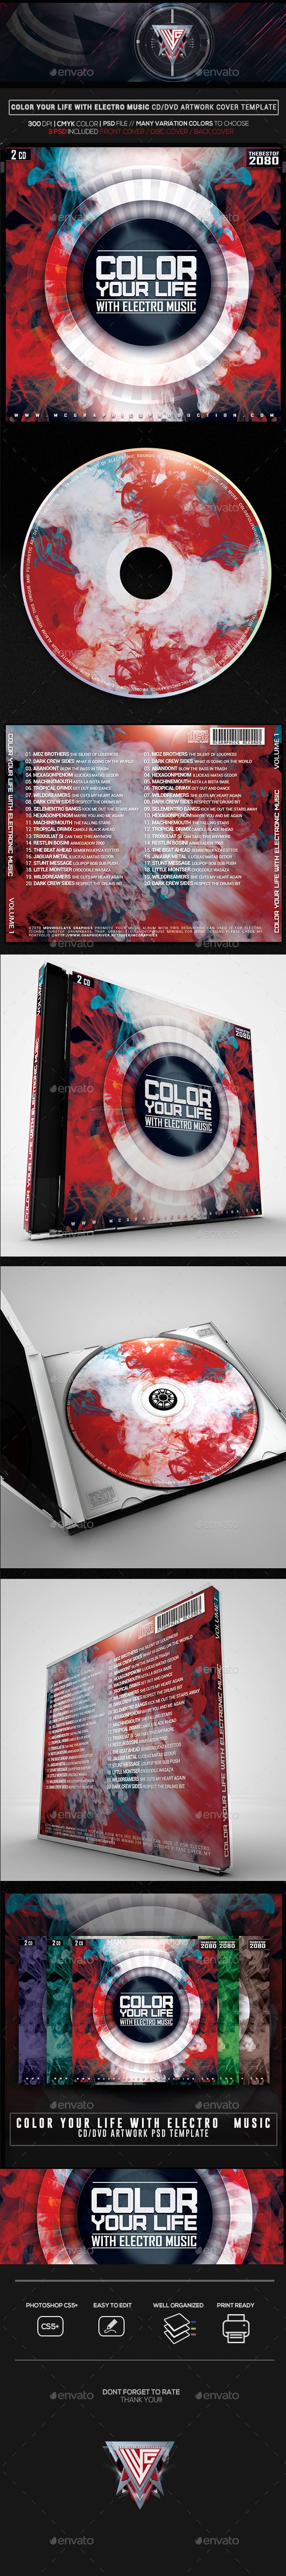 Color your Life with Electro Music CD/DVD Template   CD & DVD Cover ...